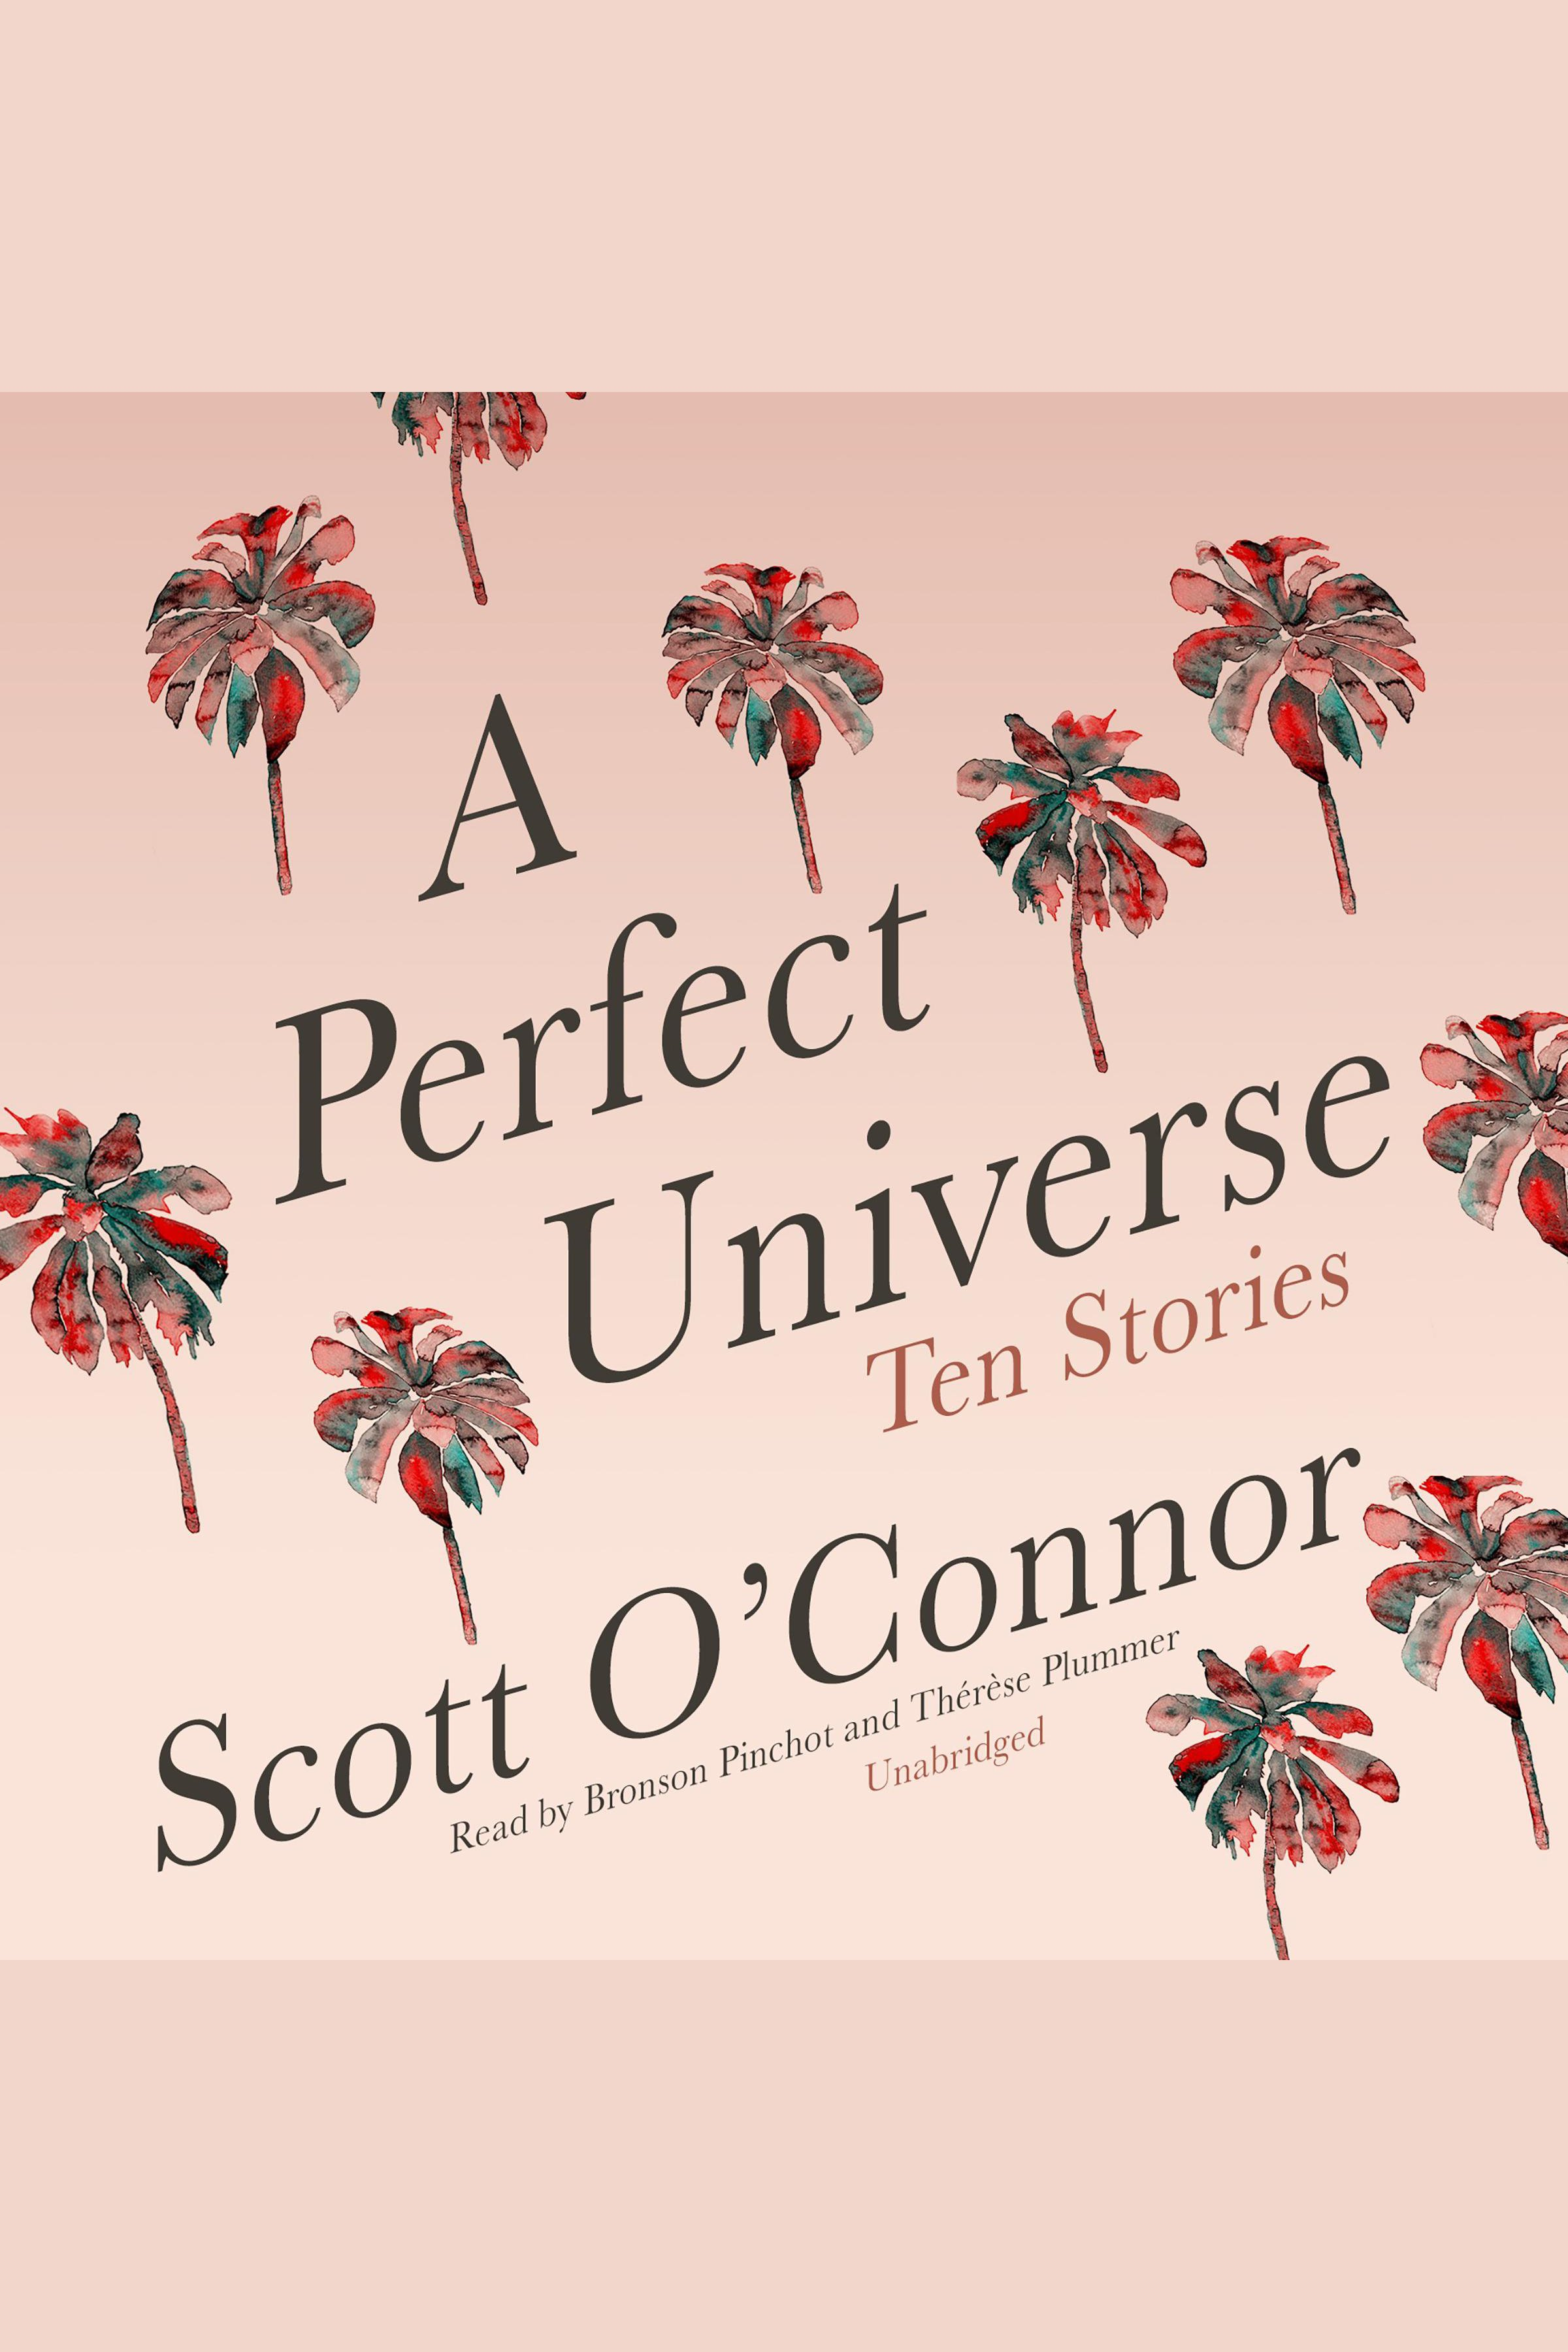 Perfect Universe, A Ten Stories cover image